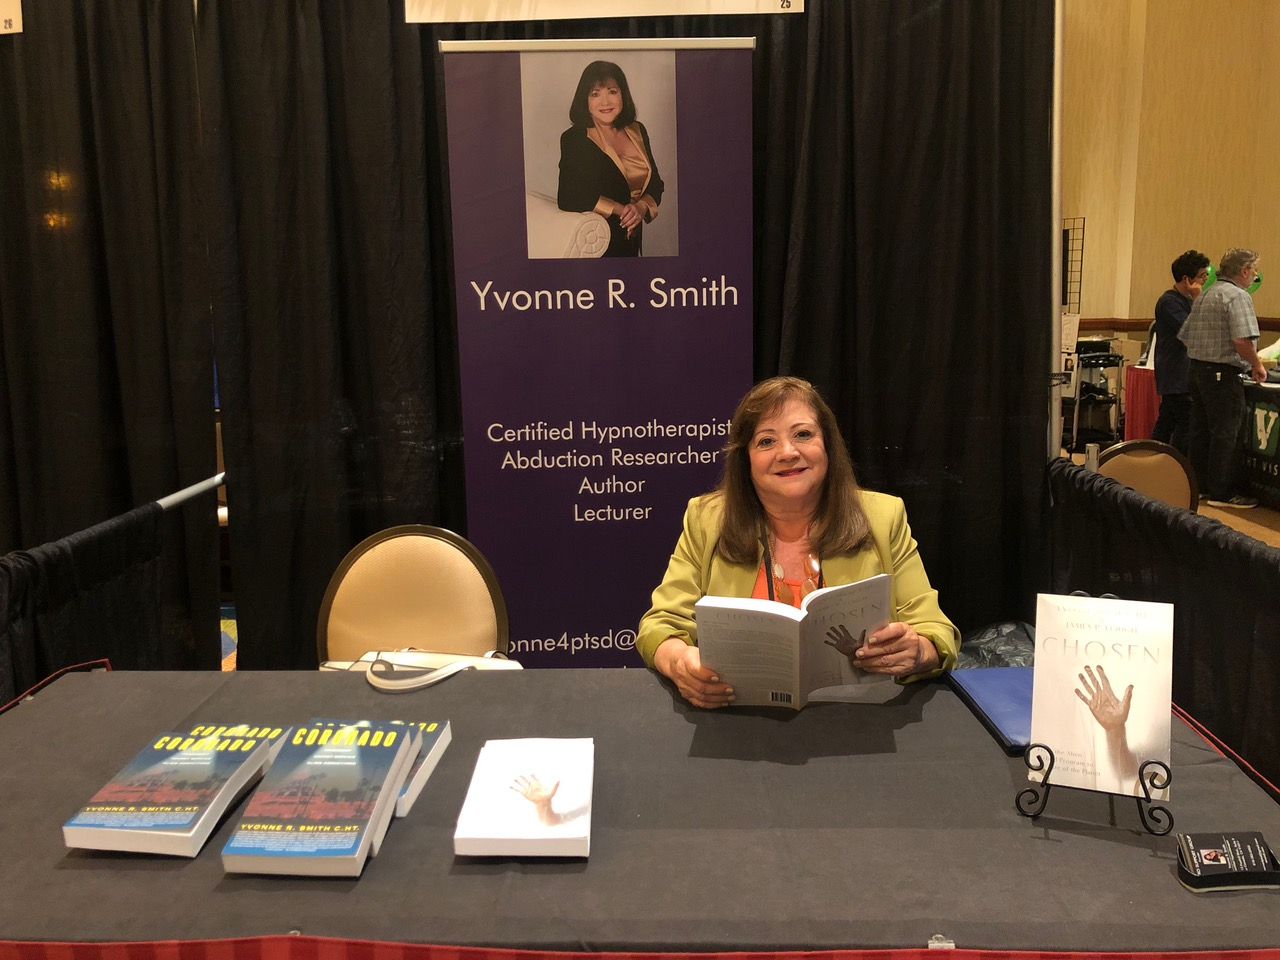 Yvonne At Book Table Congress 2019 JPEG